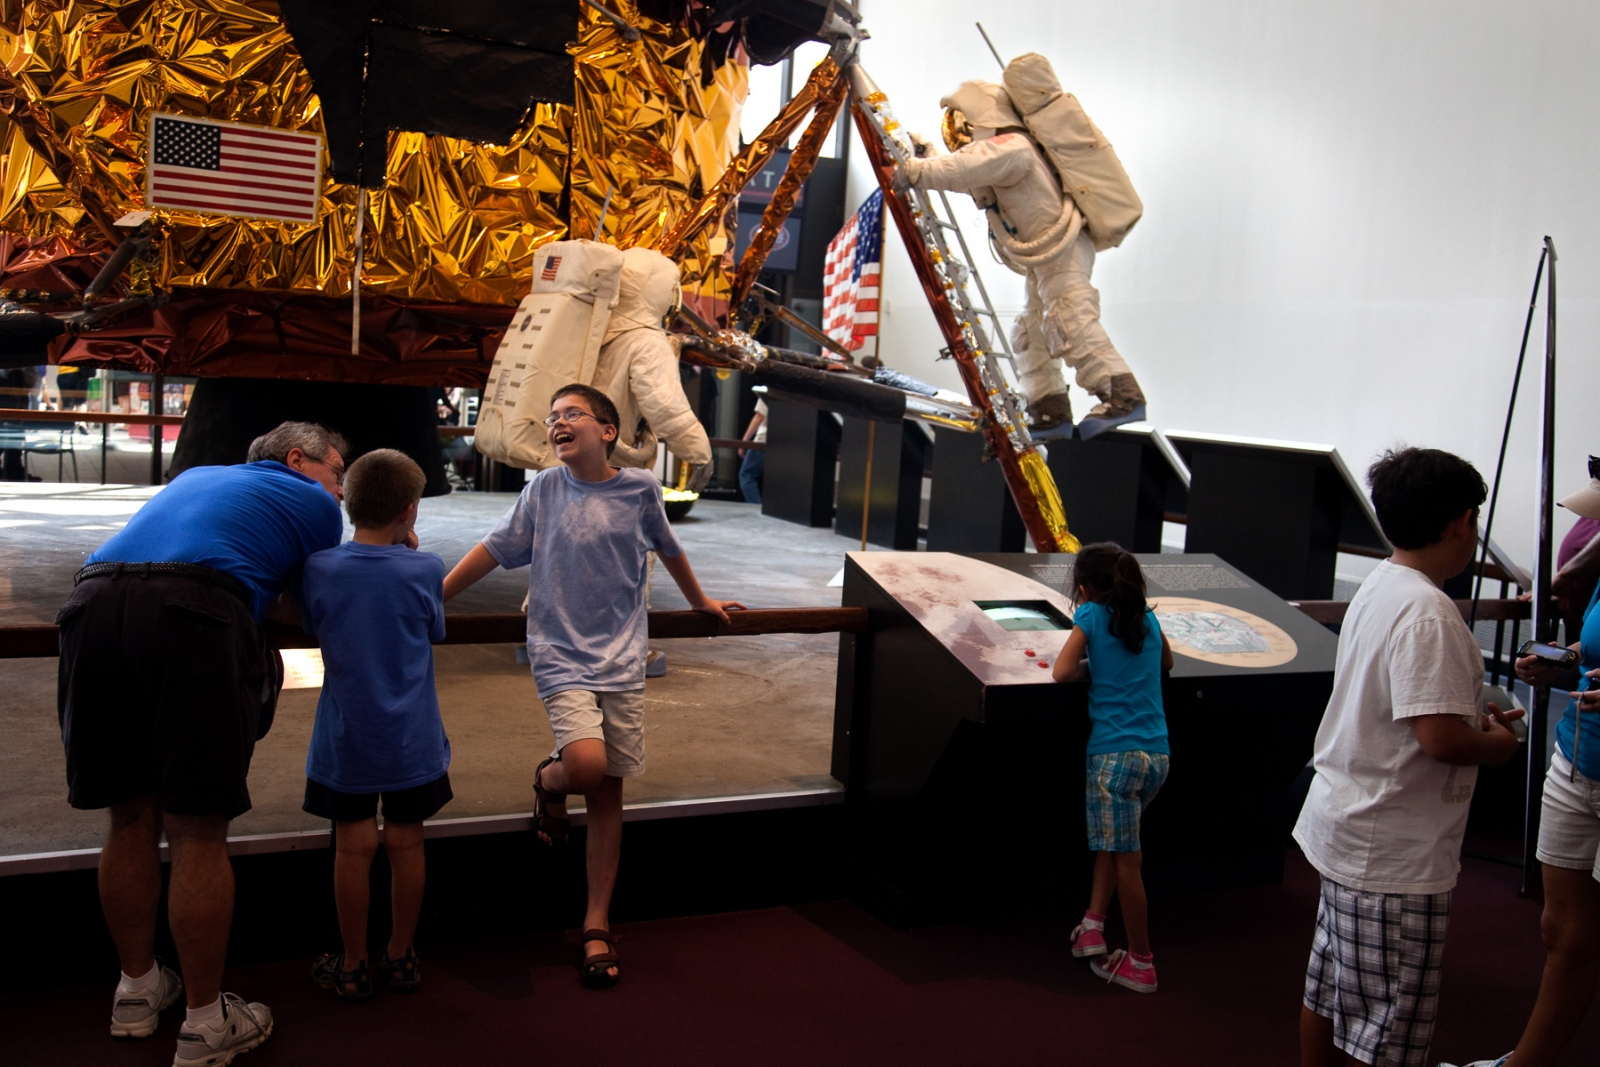 At the National Air and Space Museum tourist view a mock-up of the moon landing by Apollo 11 that happened 40 years ago.